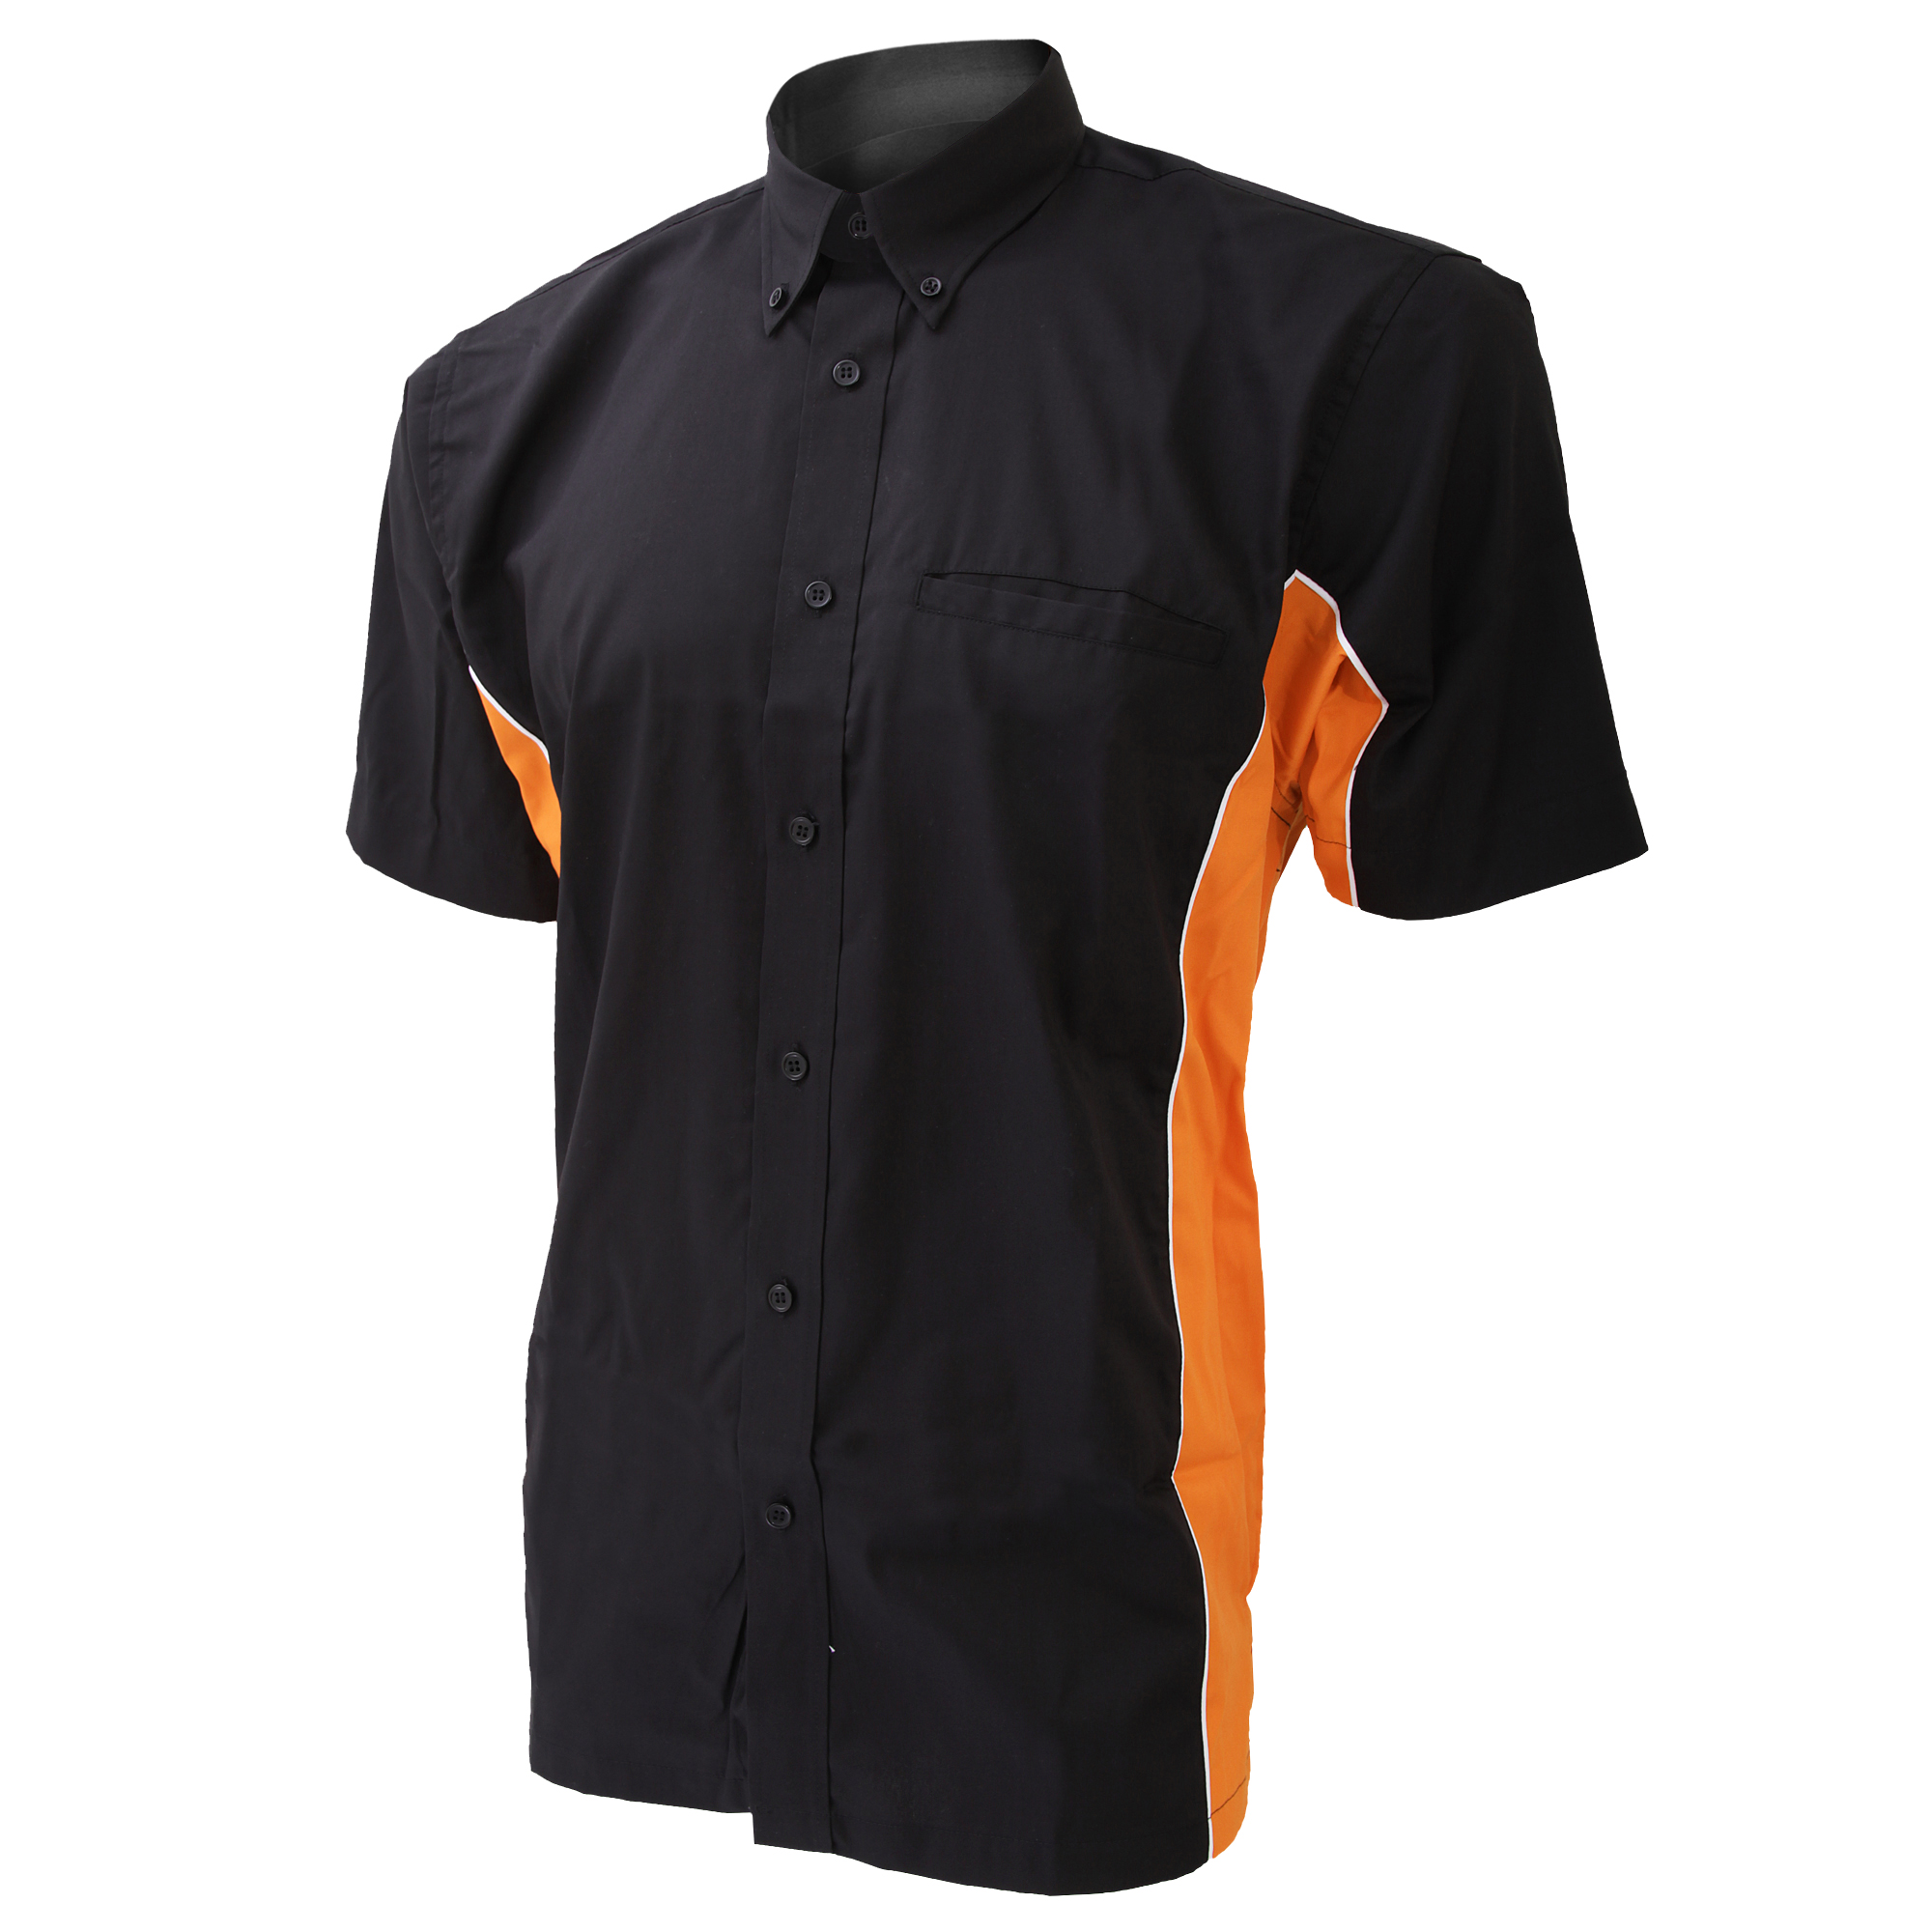 Gamegear Mens Sportsman Short Sleeve Shirt / Mens Sportswear (S) (Black/Orange/White)